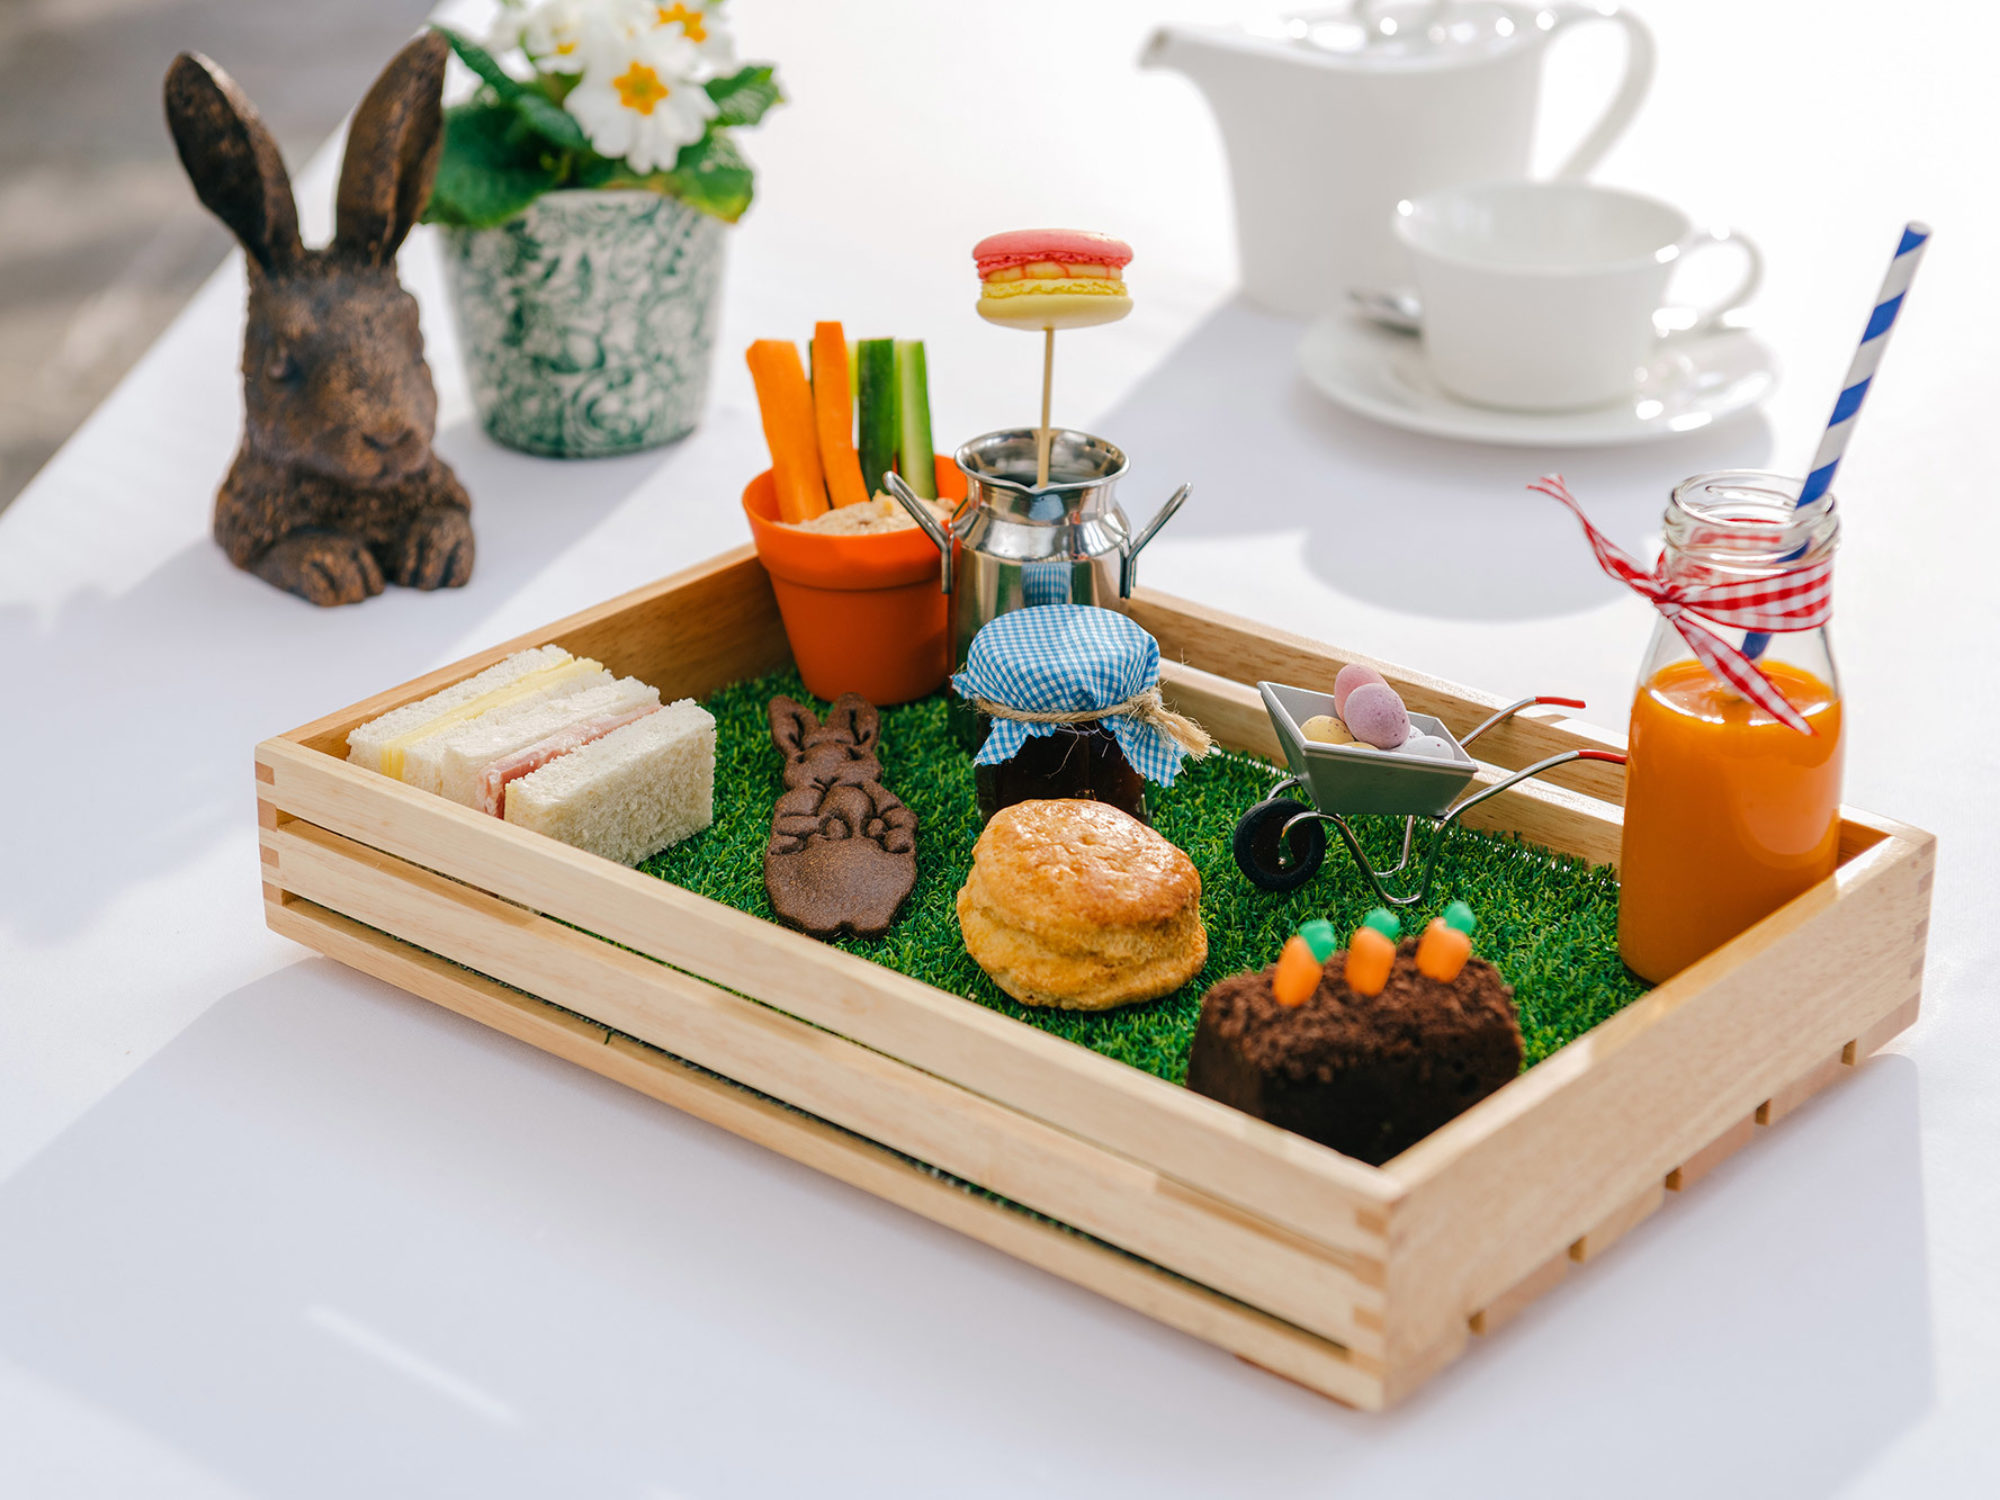 Edible garden in wooden crate with cakes and sandwiches.